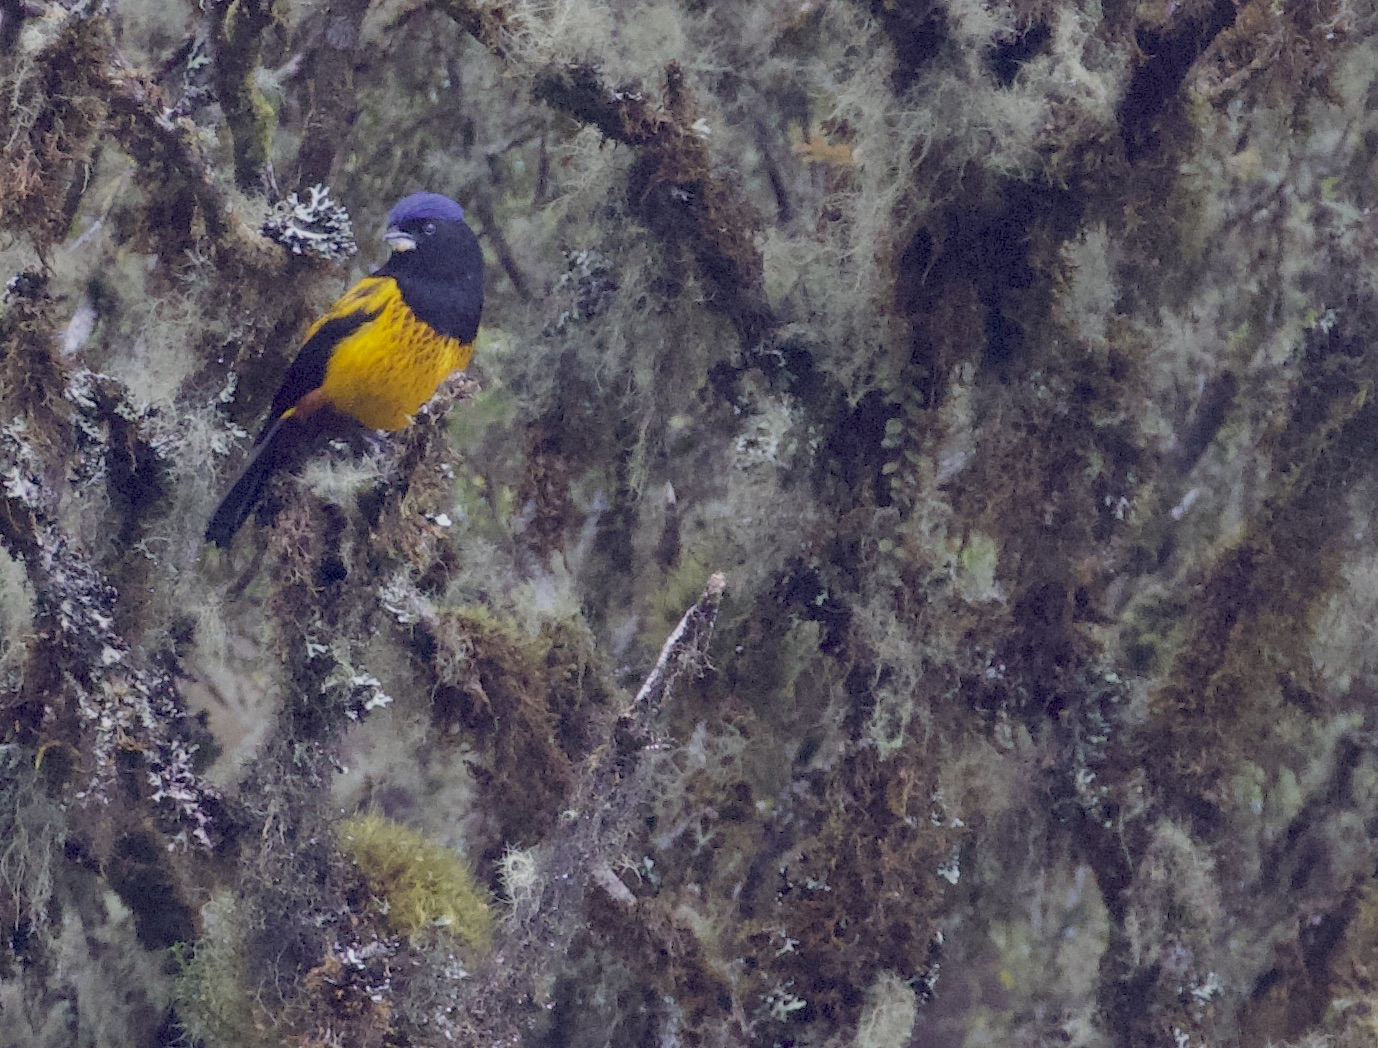 Golden-backed Mountain-Tanager.